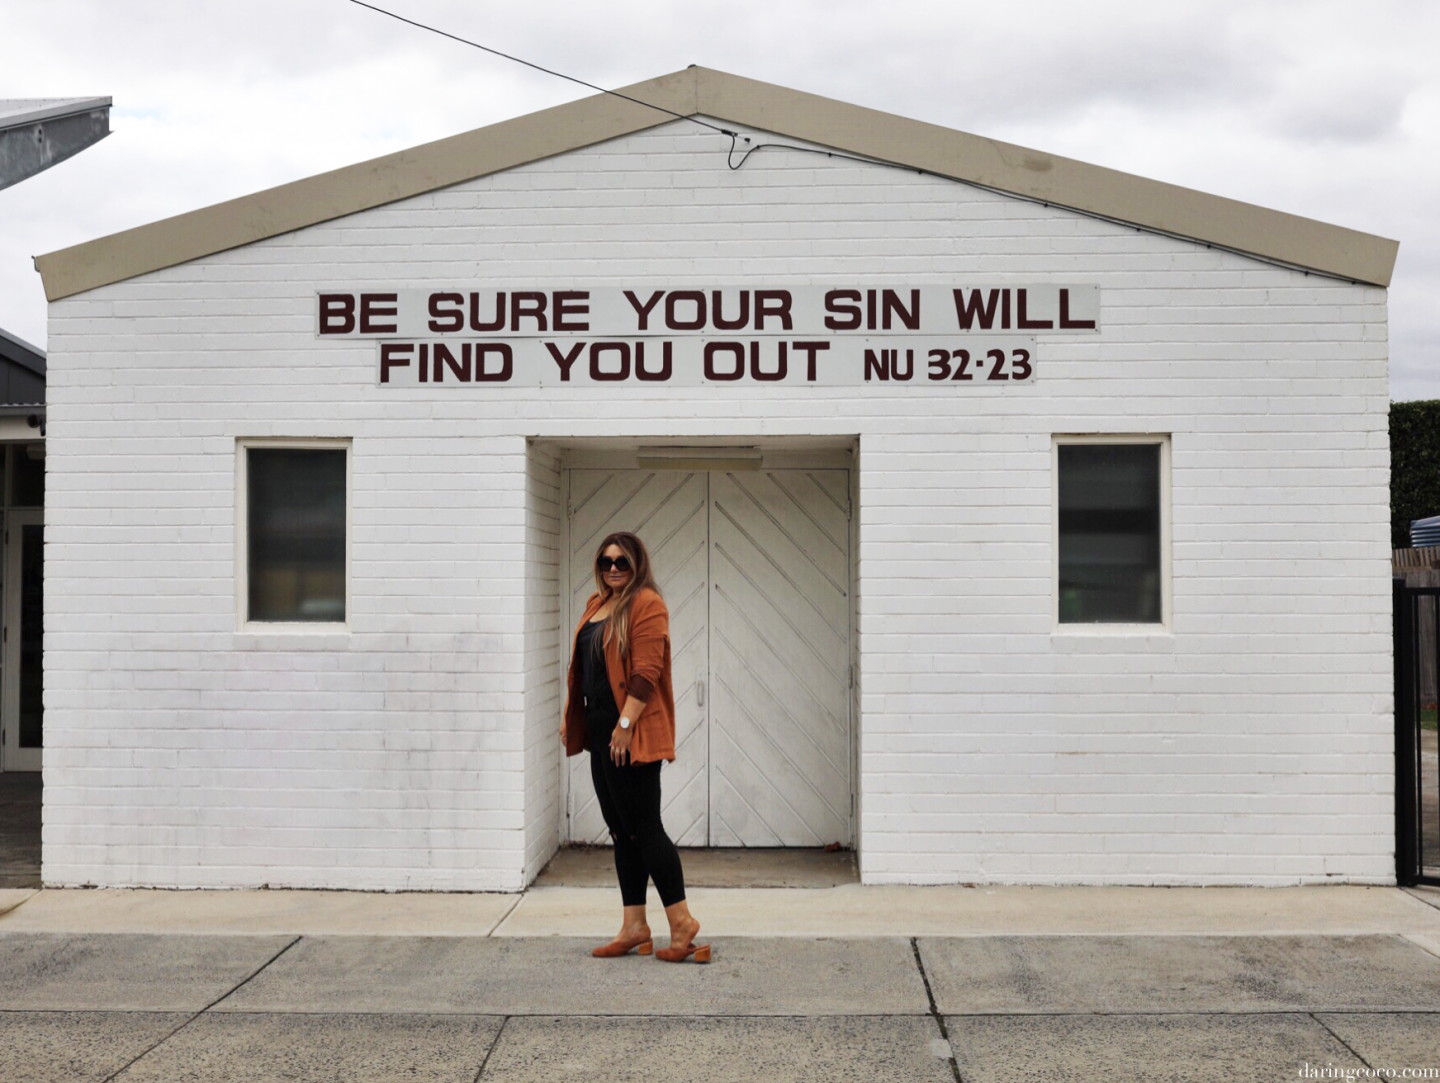 be sure, your sin will find you out